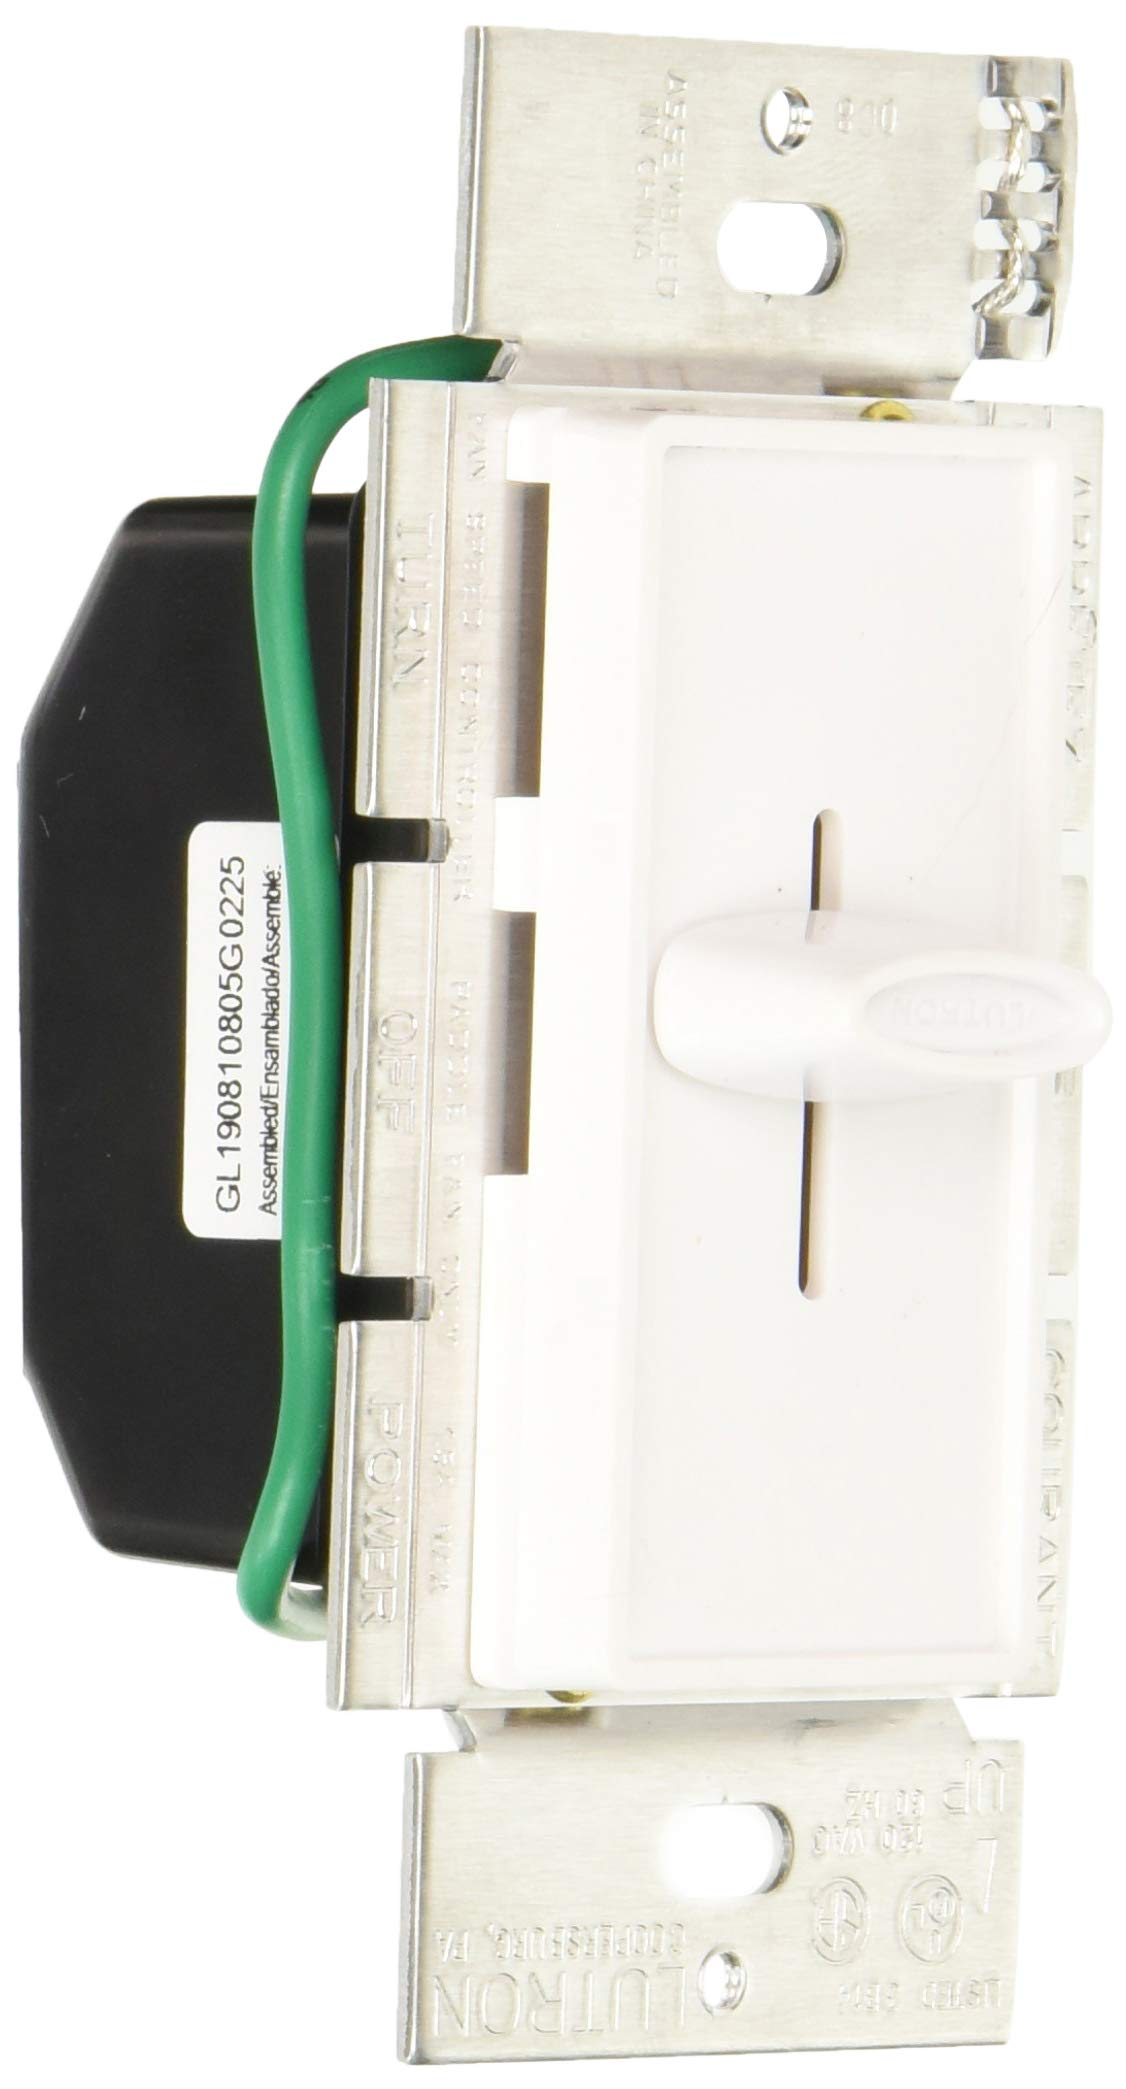 Lutron SFSQ-FH-WH Electronics Slide-To-Off Fan Speed Control, White